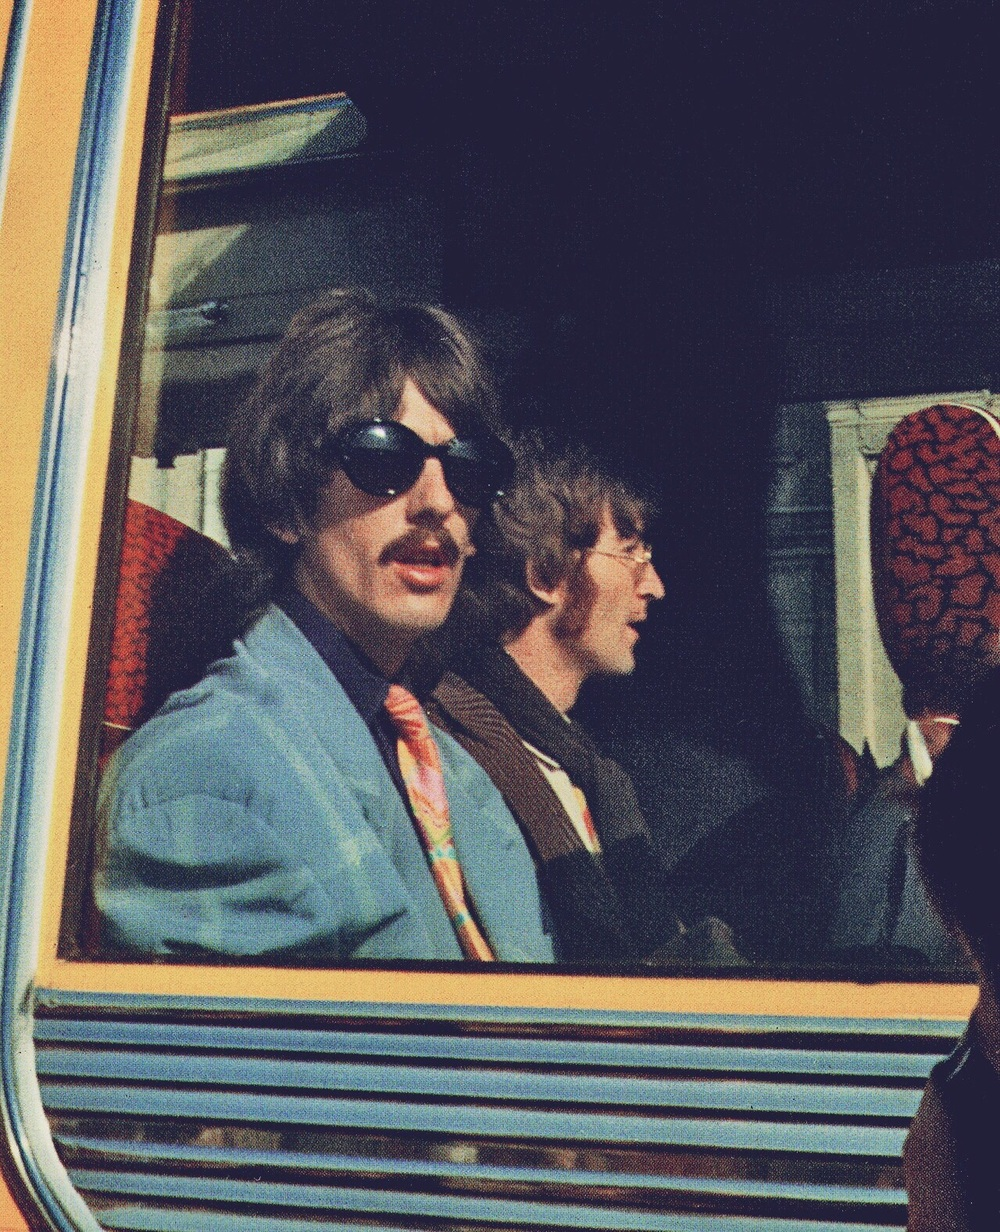 G eorge Harrison and John Lennon aboard the Magical Mystery Tour bus, 1967.